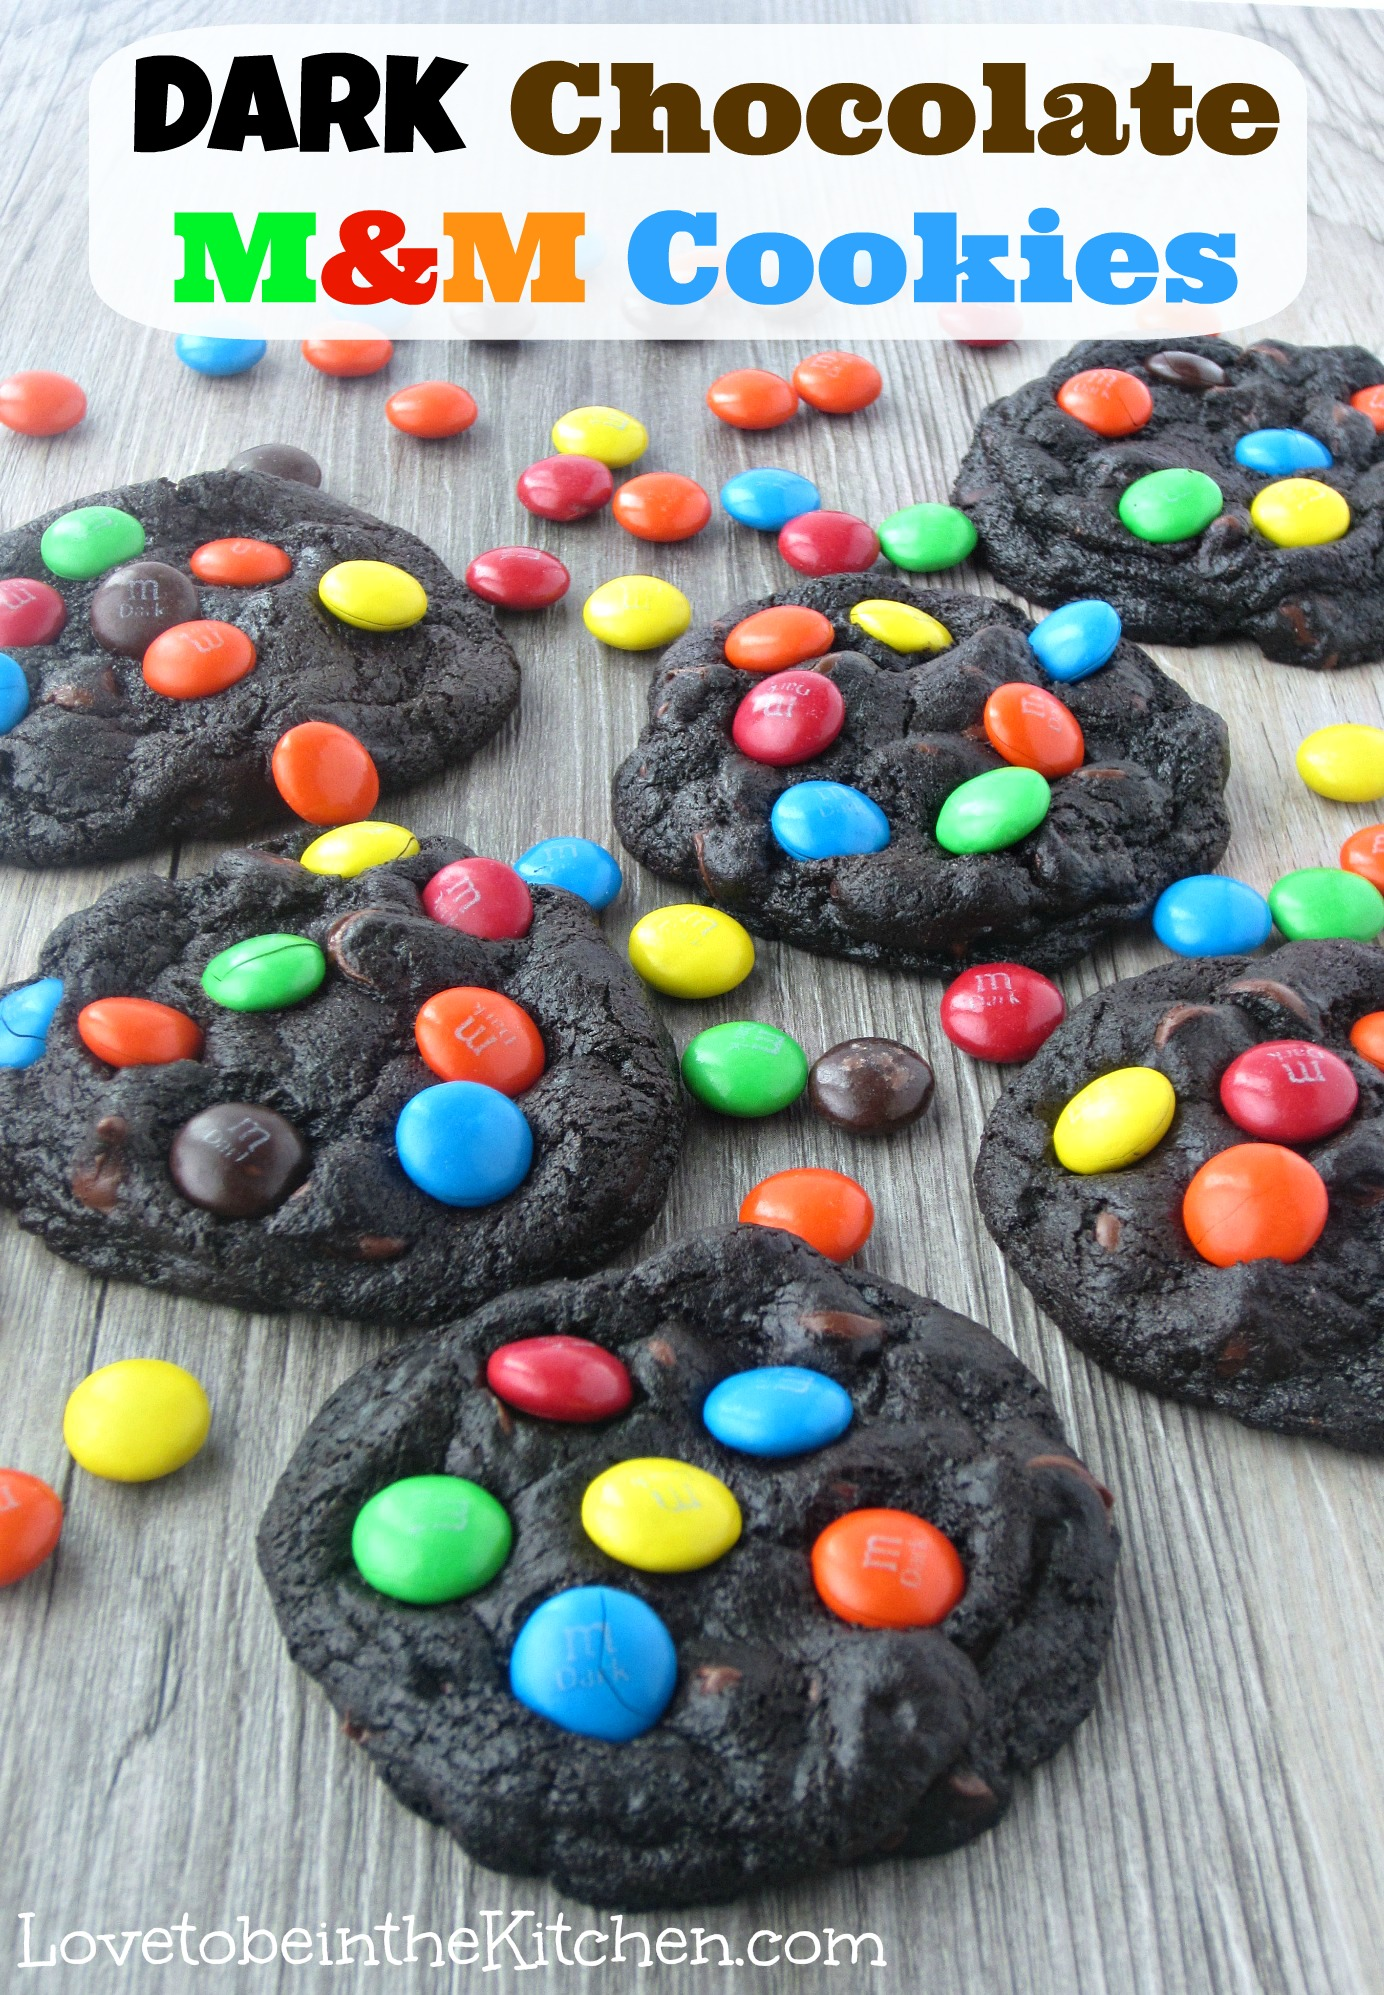 Dark Chocolate M&M Cookies - Love to be in the Kitchen